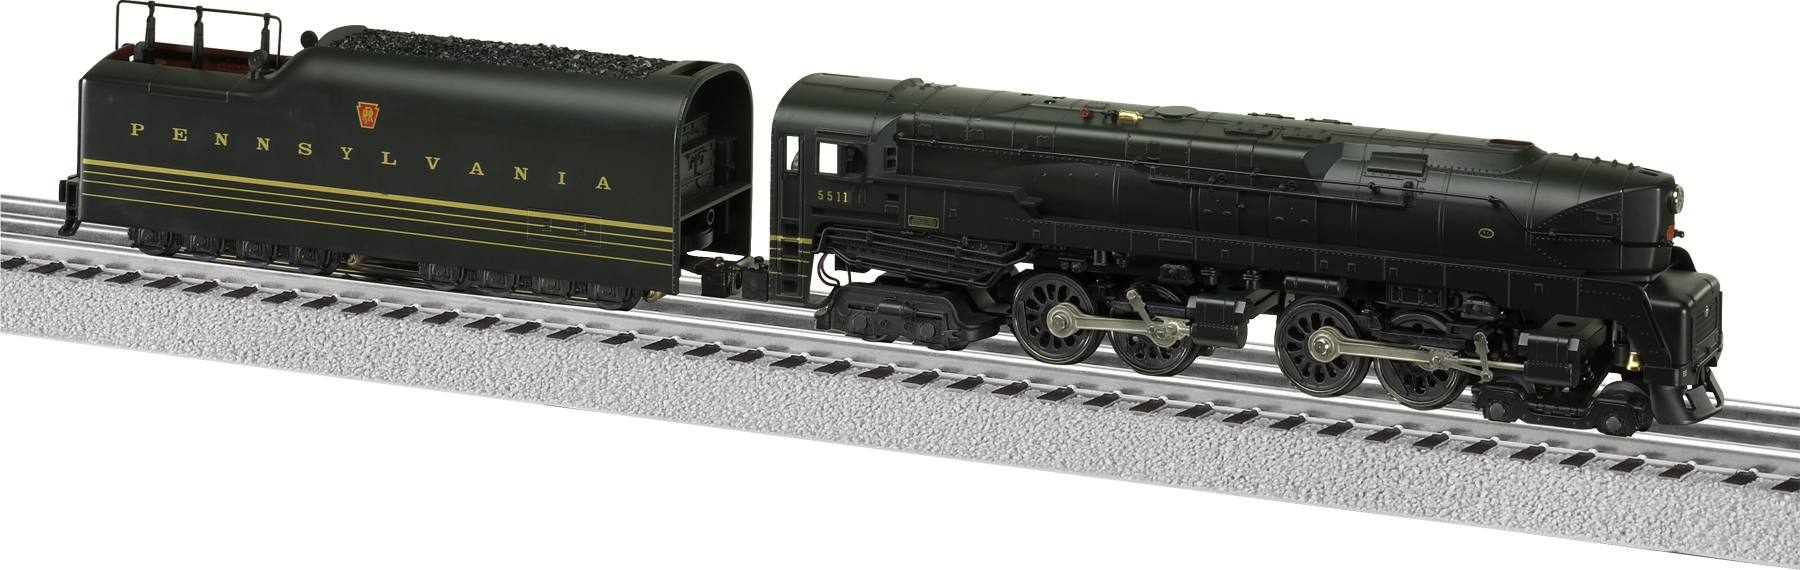 Lionel Whistle Wiring Diagrams Electrical Accessories Tender 2046w Diagram Trusted Layout